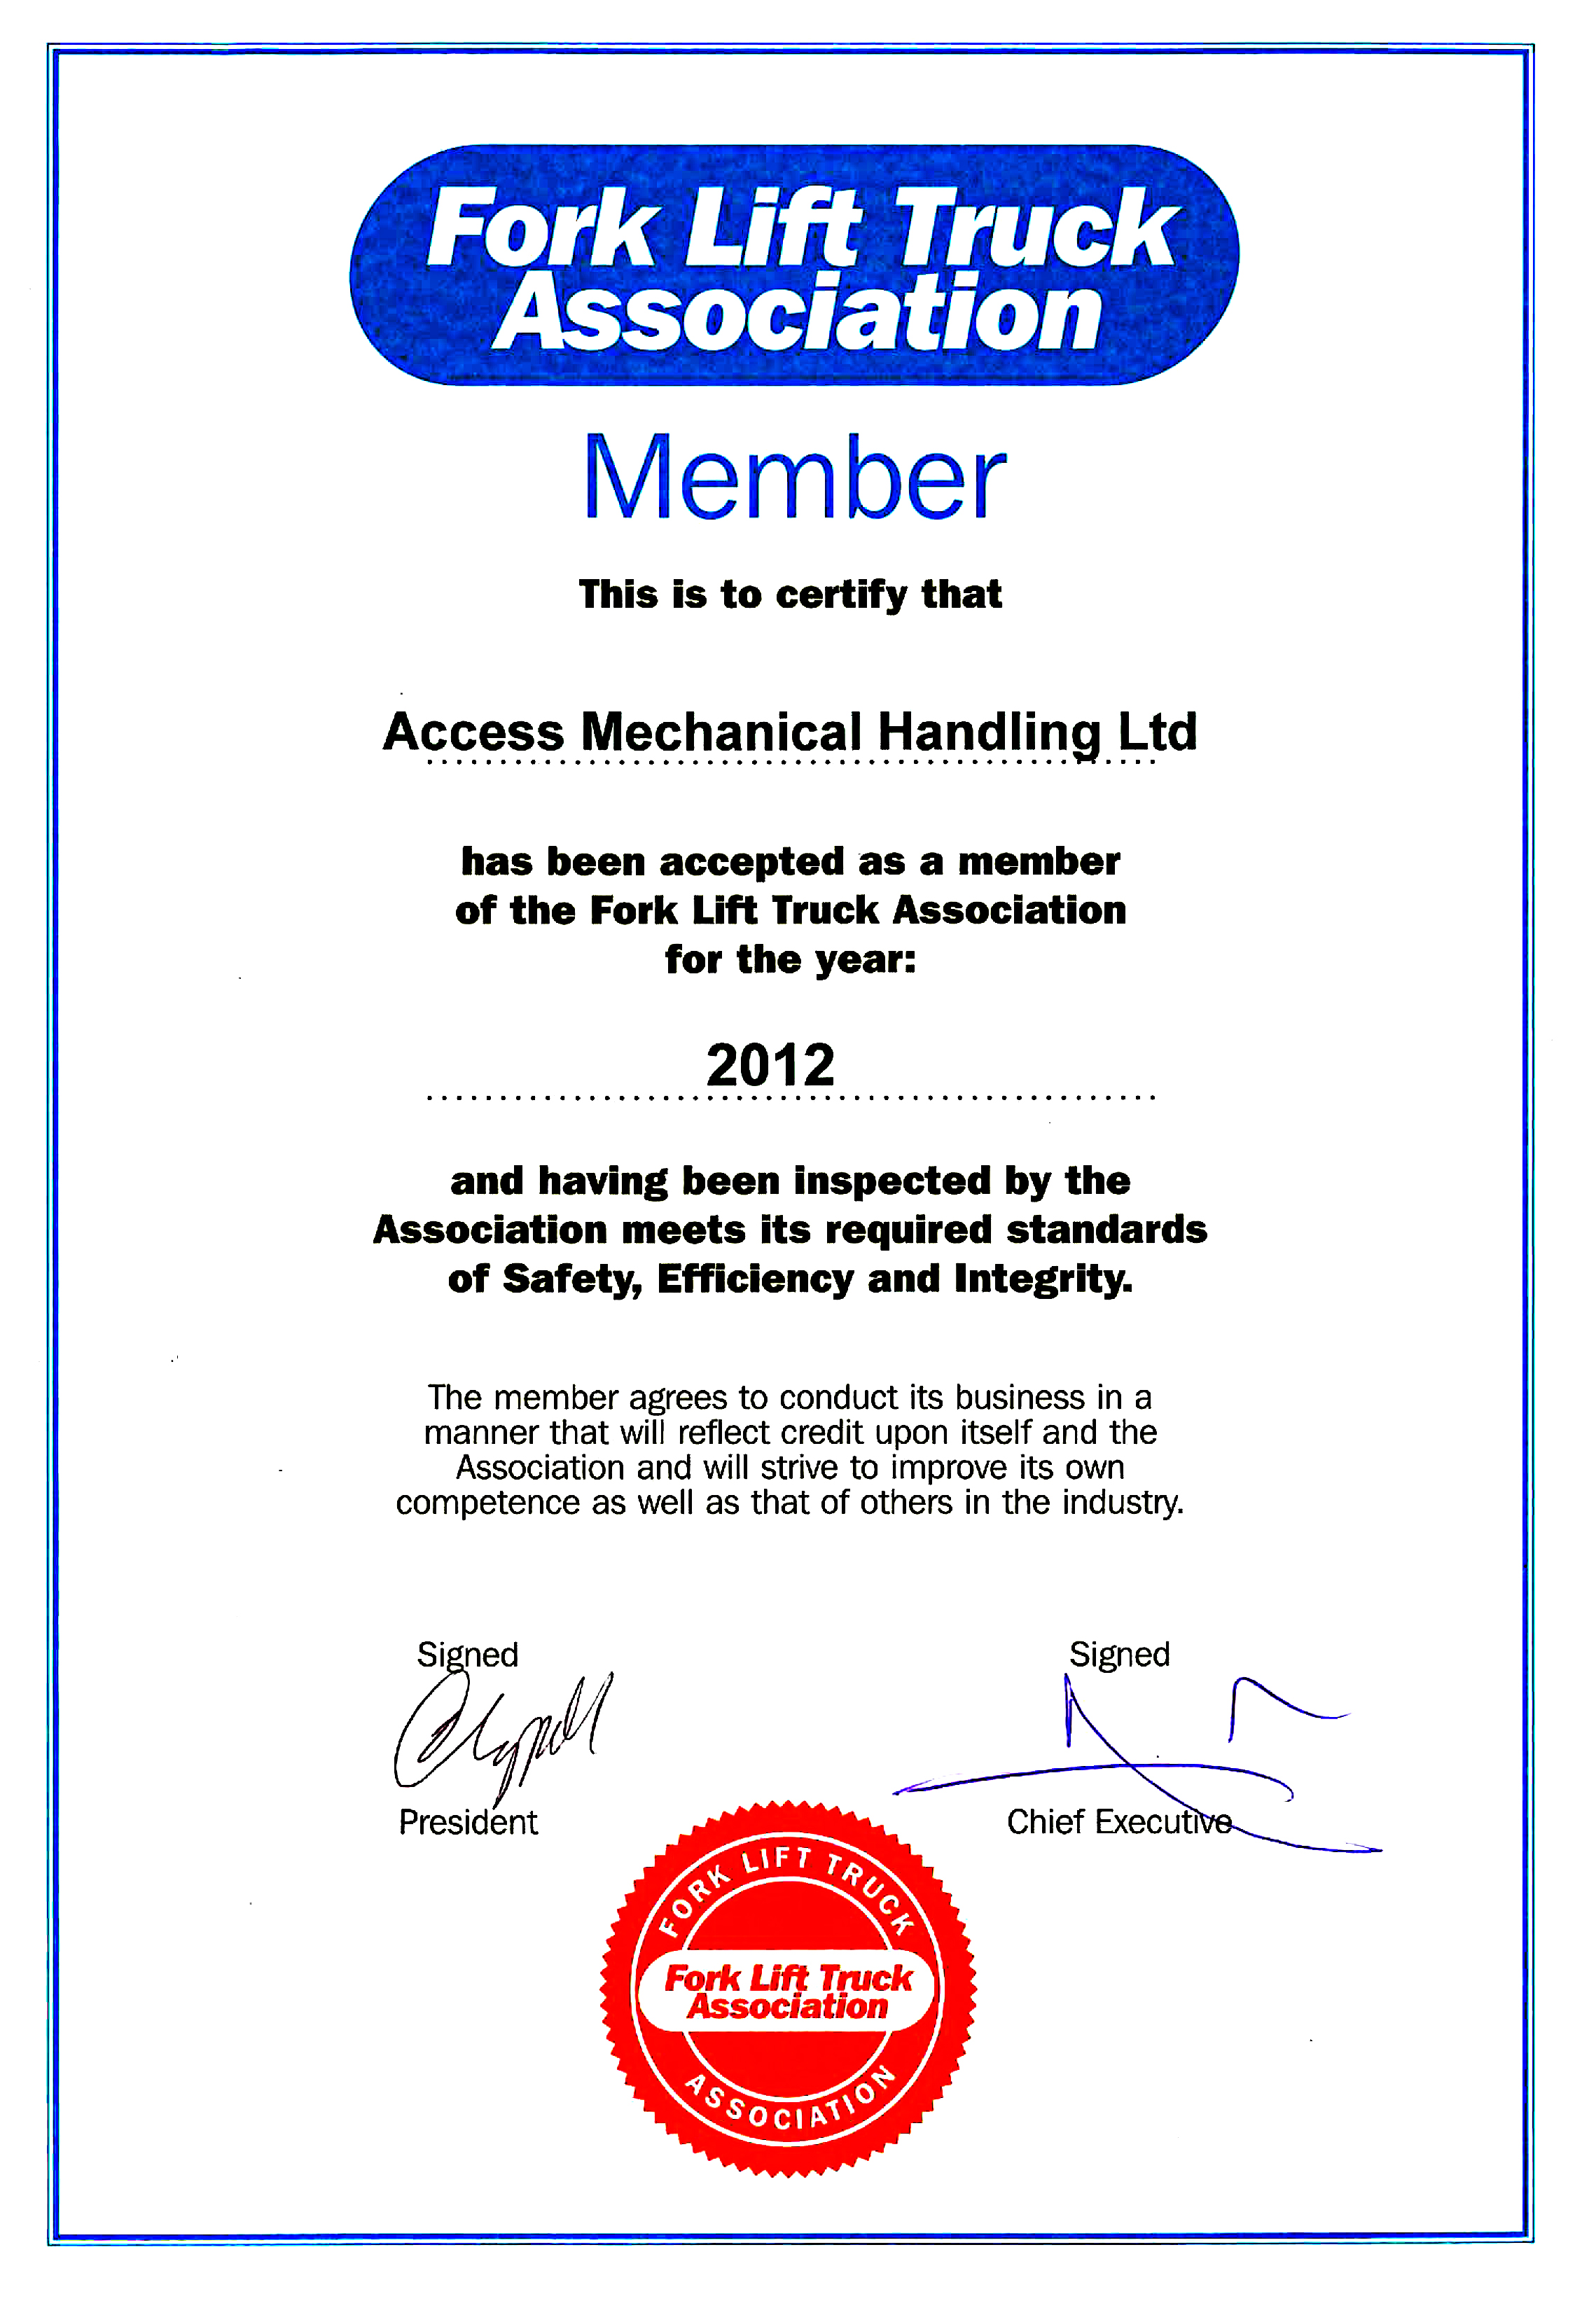 Accreditations and certifications access mechanical handling certificate of membership of the fork lift truck association please click here 1betcityfo Choice Image